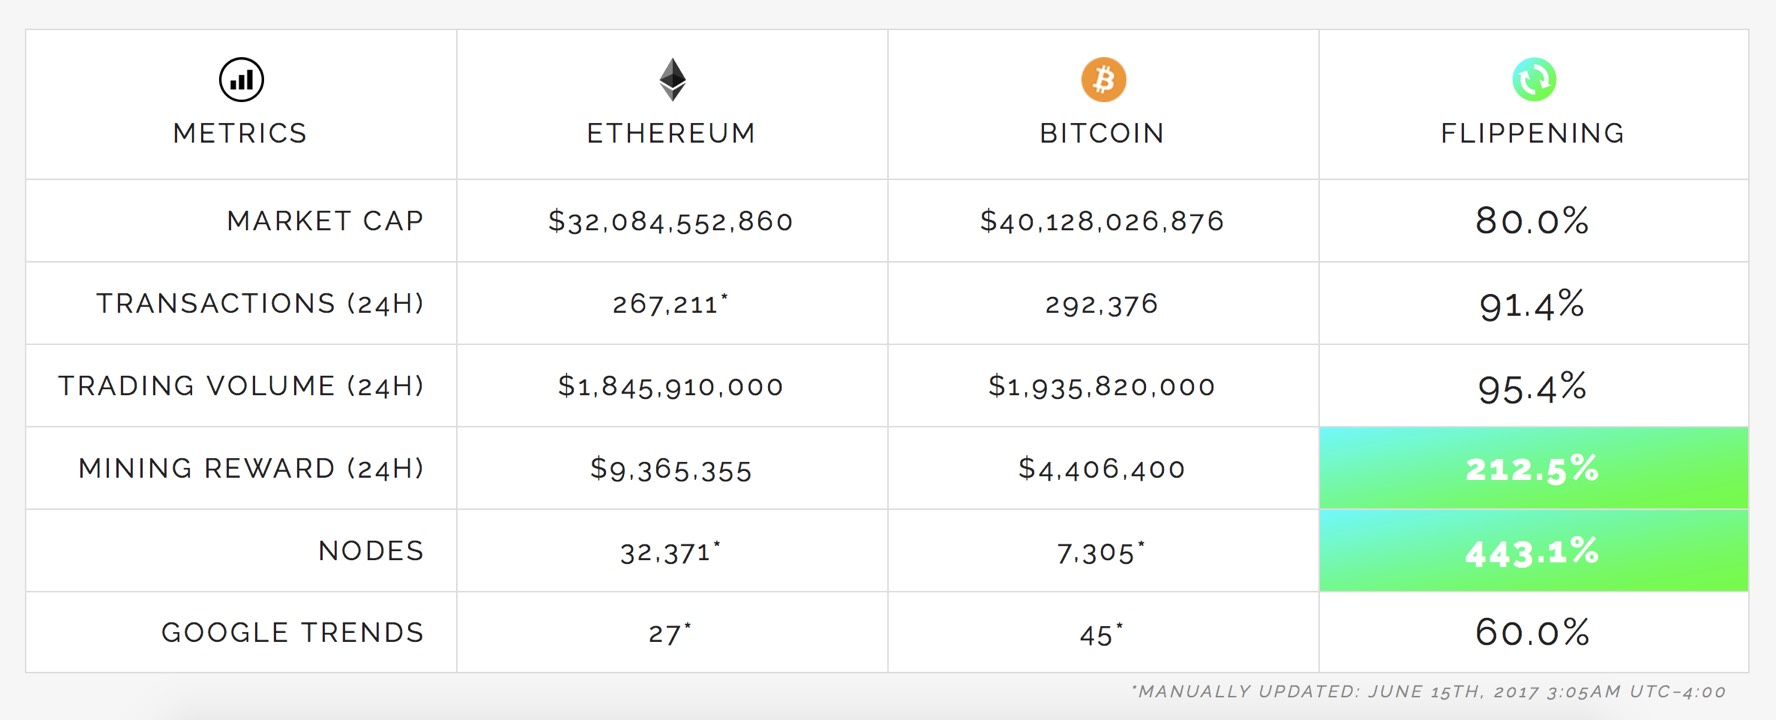 The Flippening happening, right?